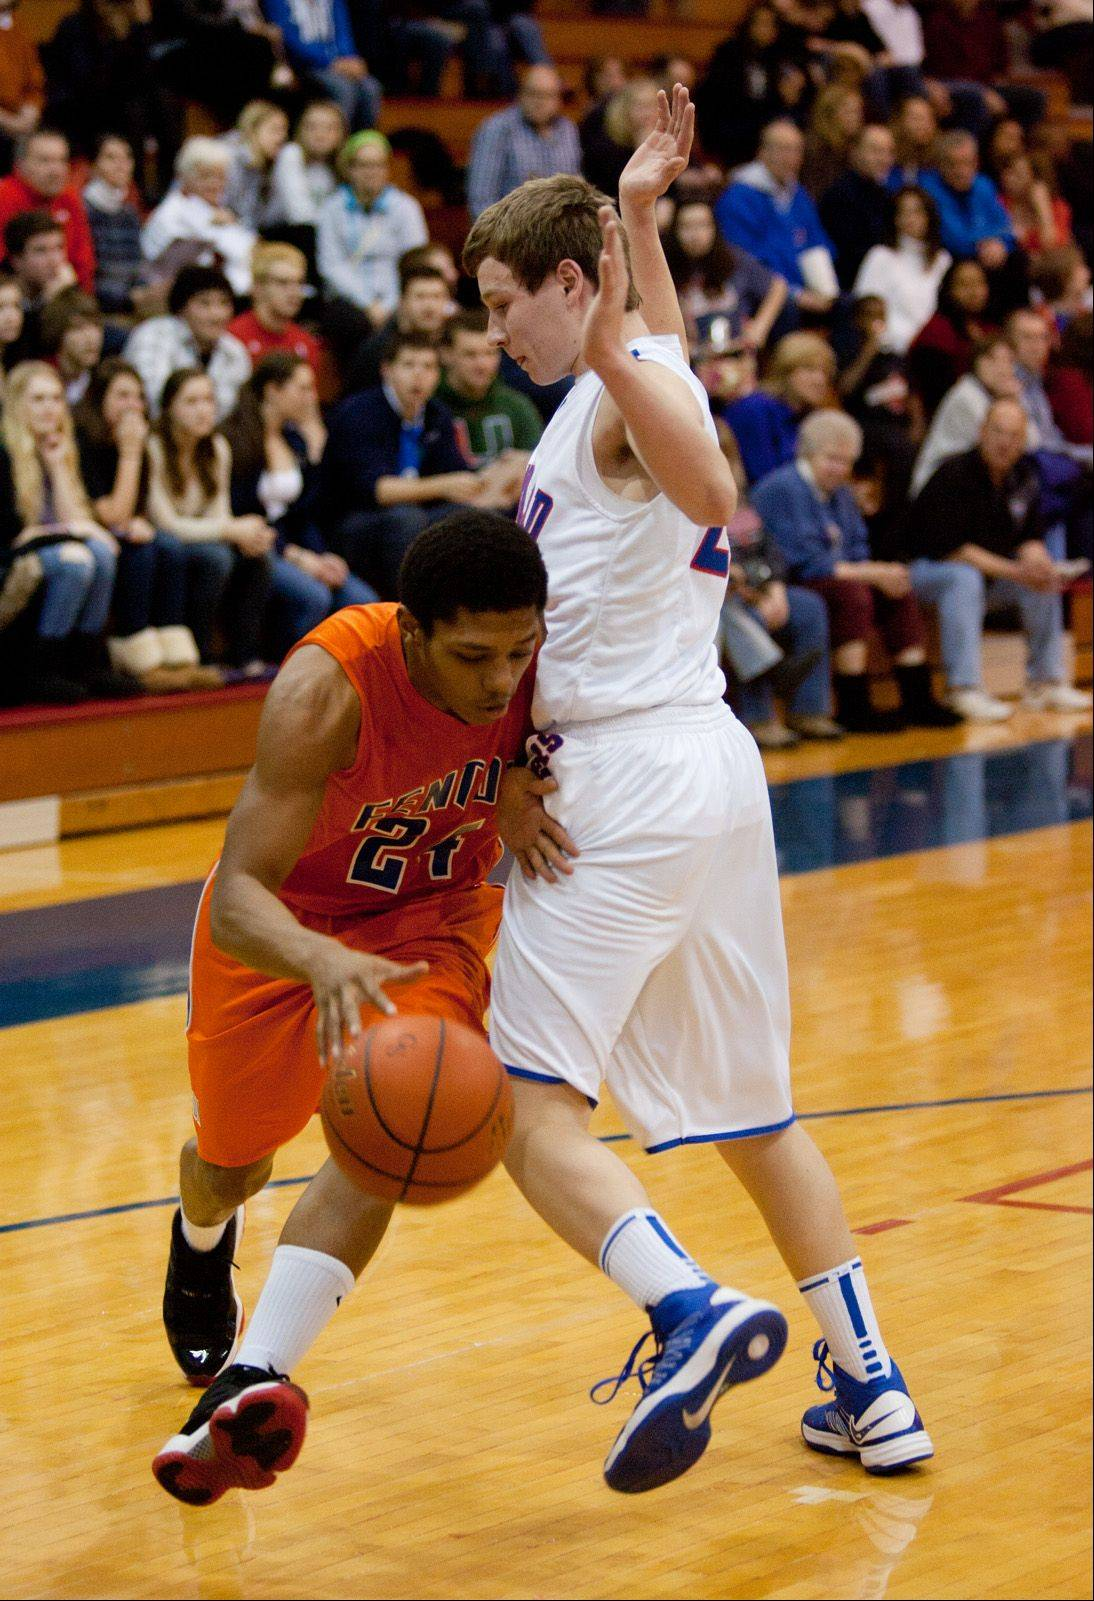 Glenbard South hosted Fenton Friday night for boys basketball.